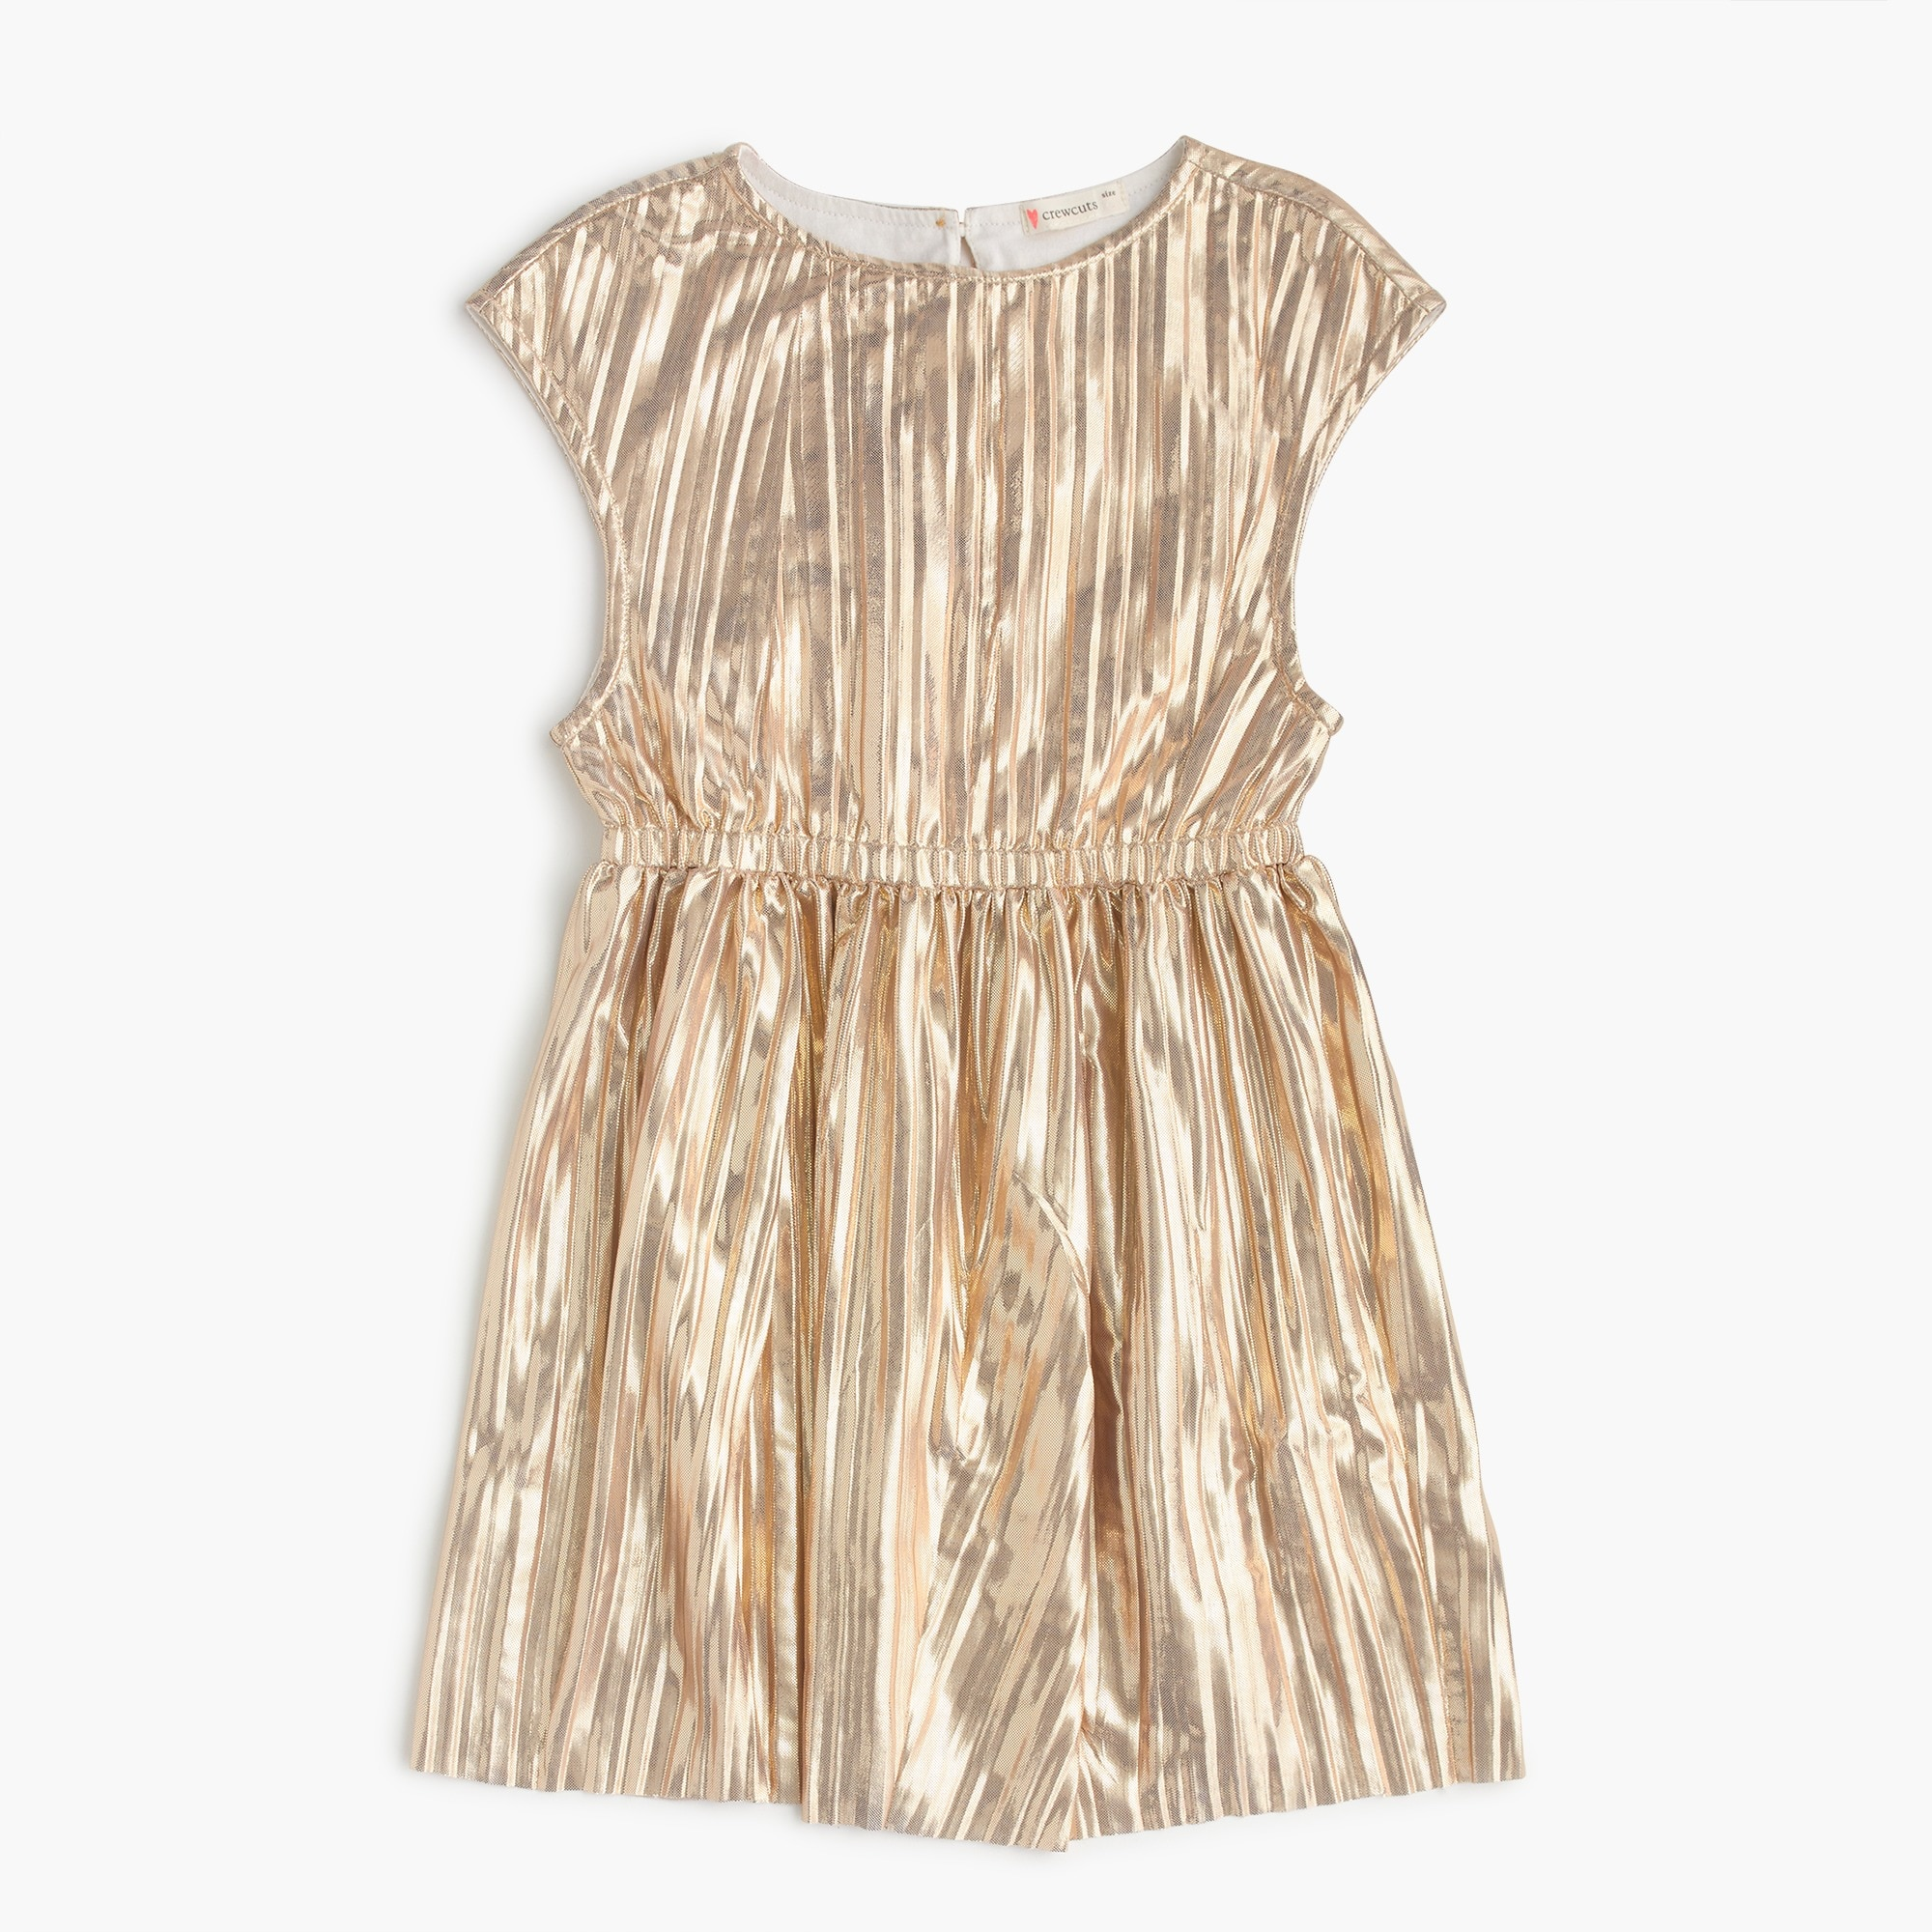 Girls' gold micropleat dress girl dresses c